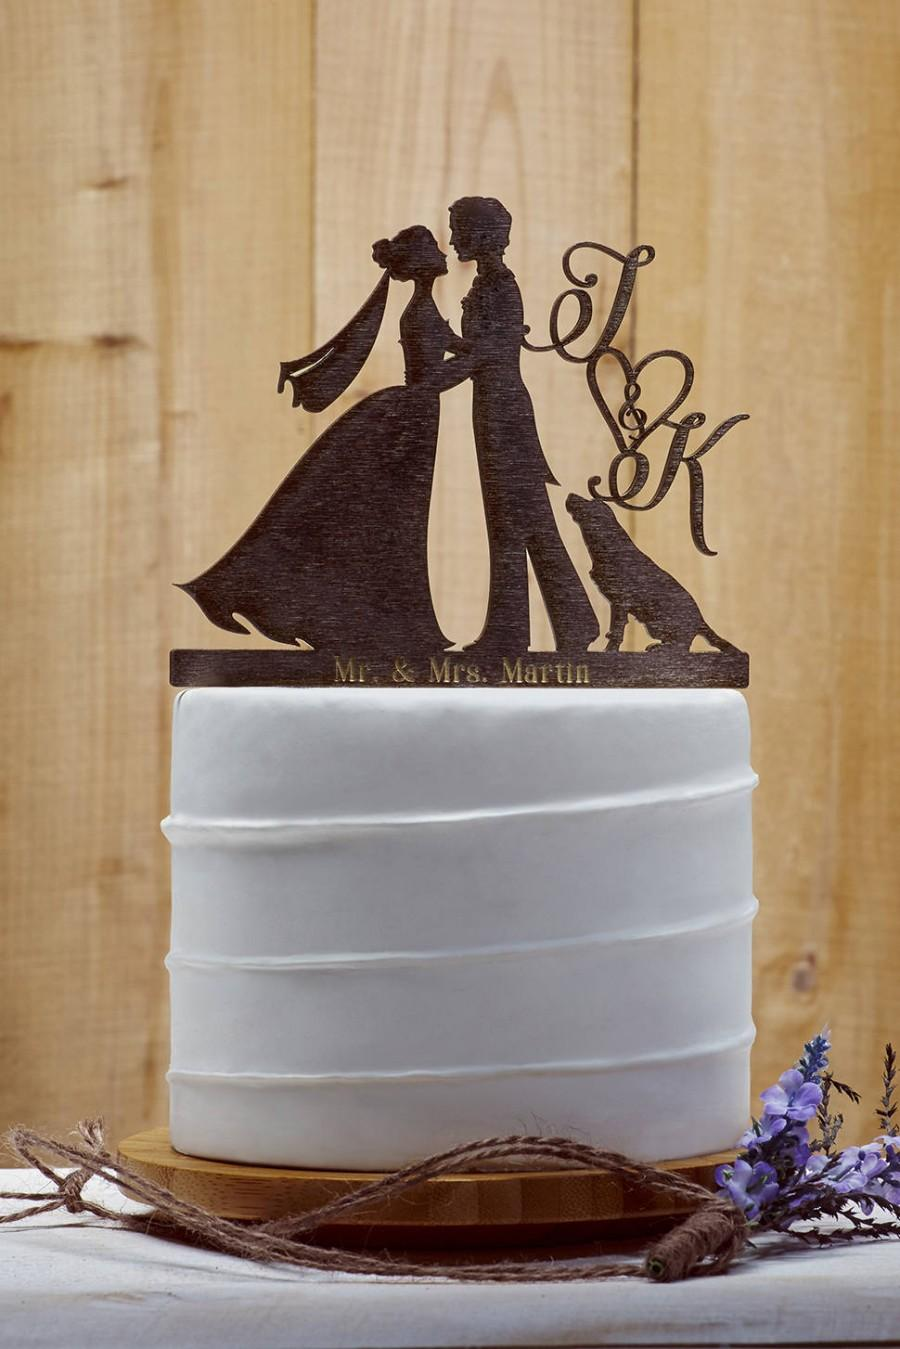 Customized Wedding Cake Topper With Dog Personalized For Custom Topper16